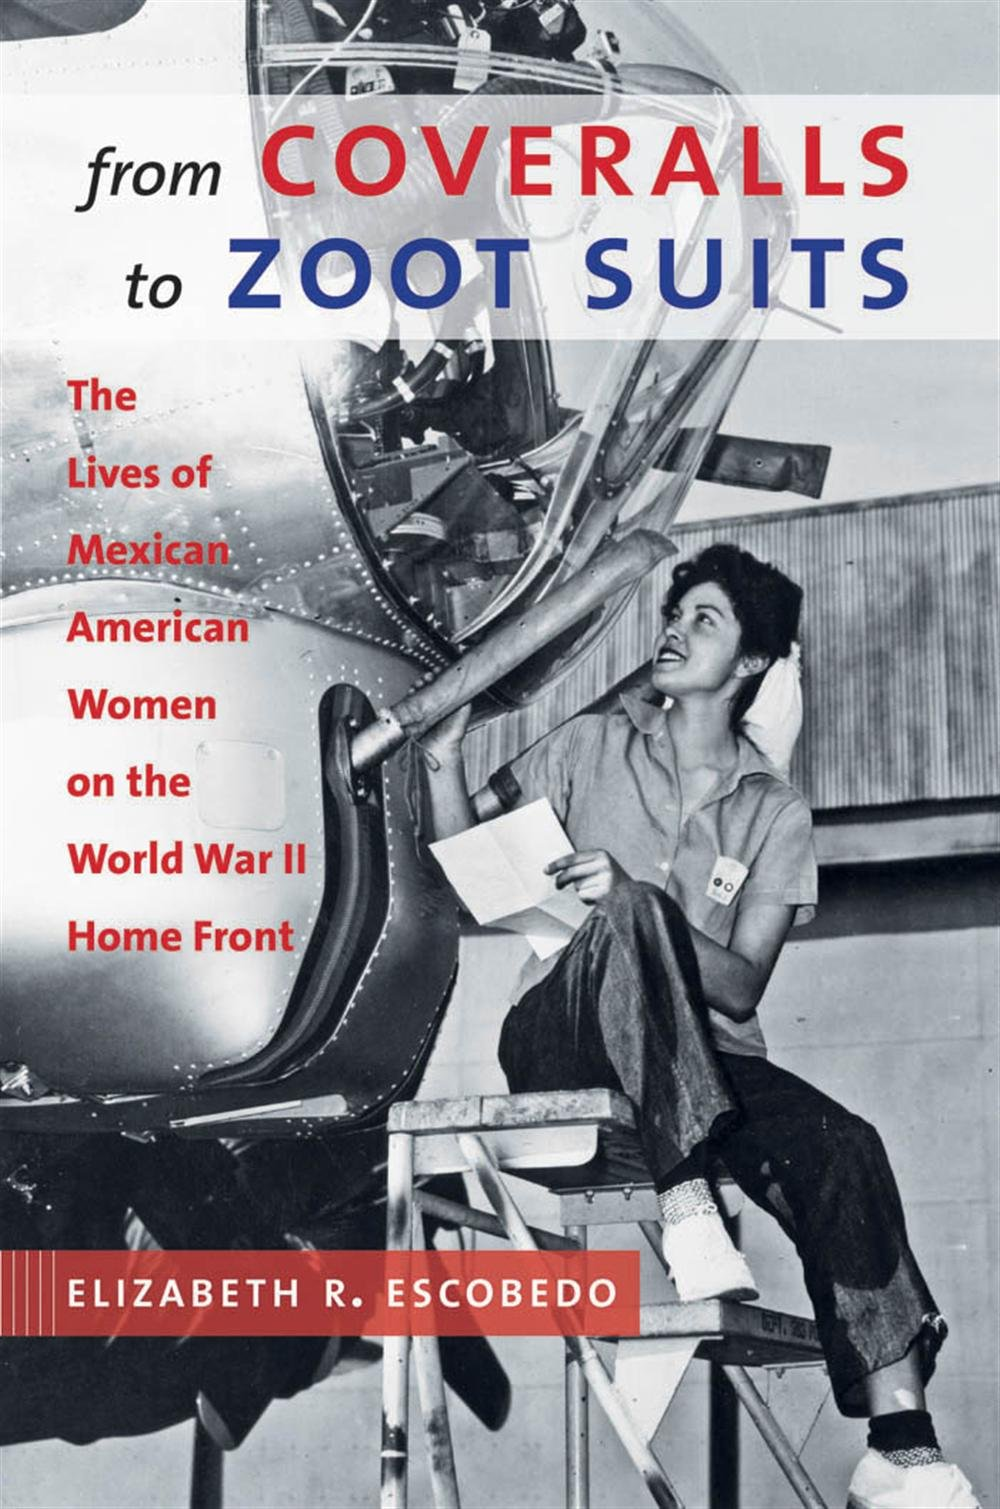 Elizabeth R. Escobedo, From Coveralls to Zoot Suits: The Lives of Mexican American Women on the World War II Home Front-click the link below for more information about this book